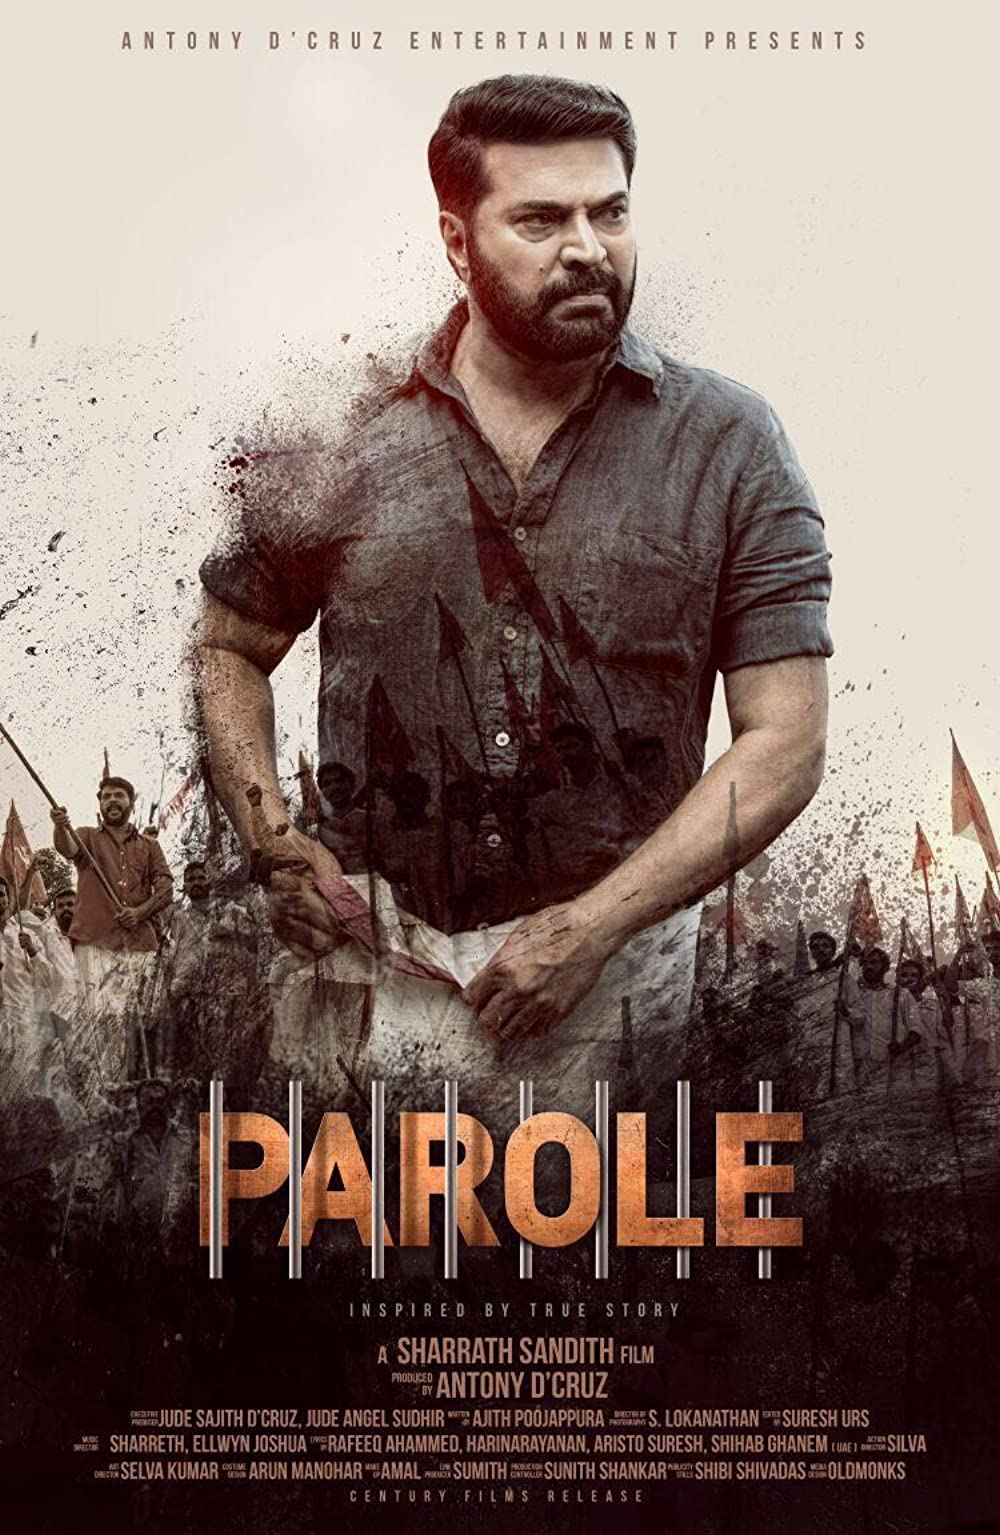 Parol (Parole) 2021 Hindi Dubbed 720p HDRip 870MB Download